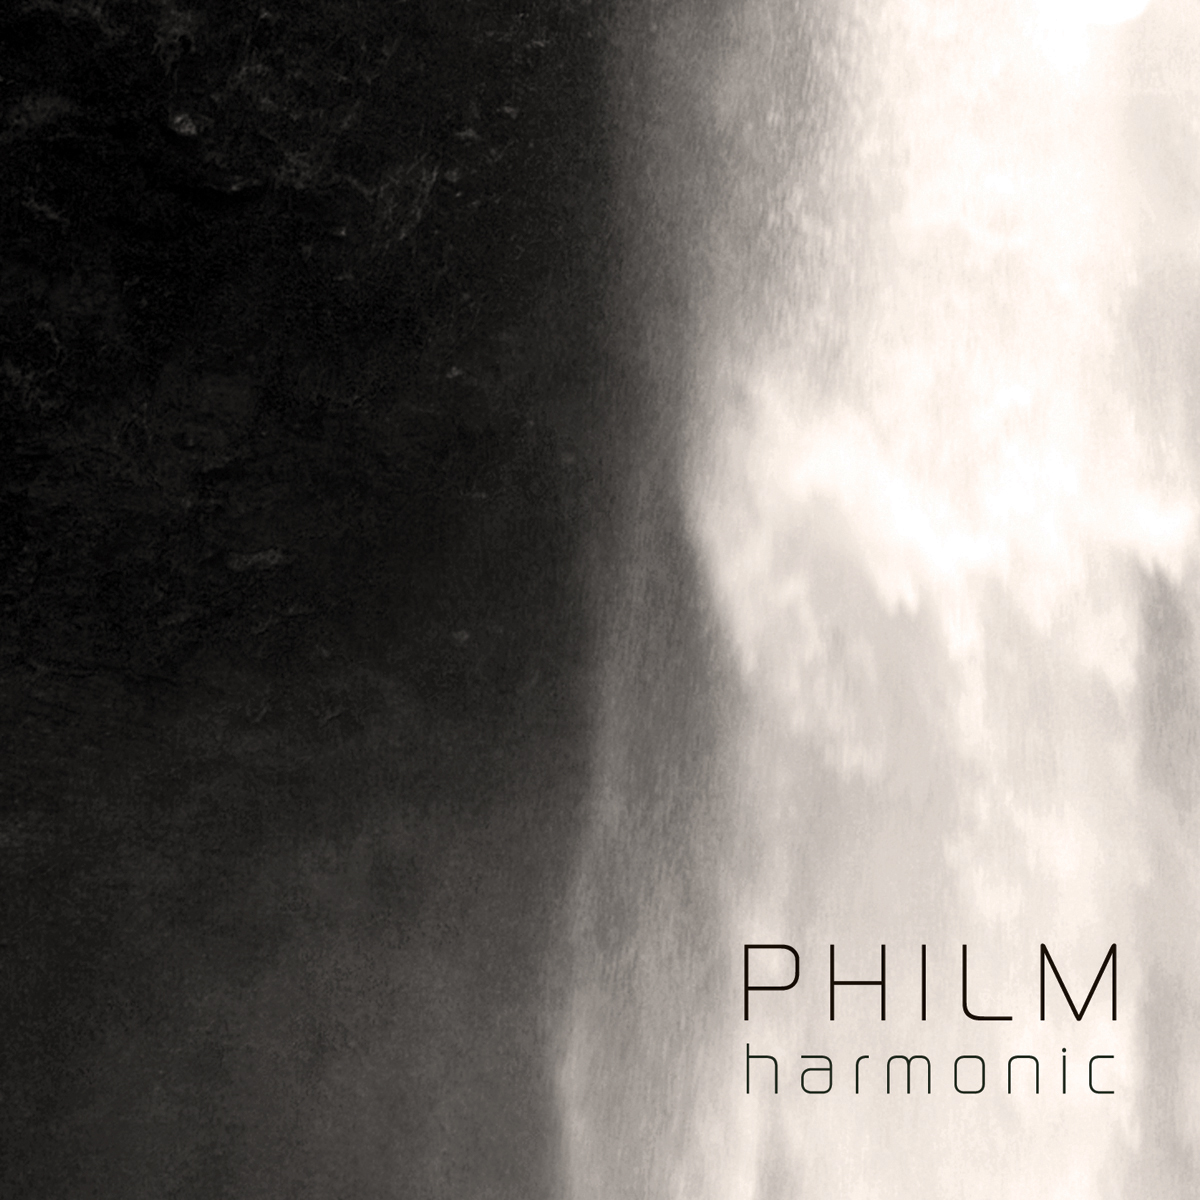 Philm Harmonic Artwork